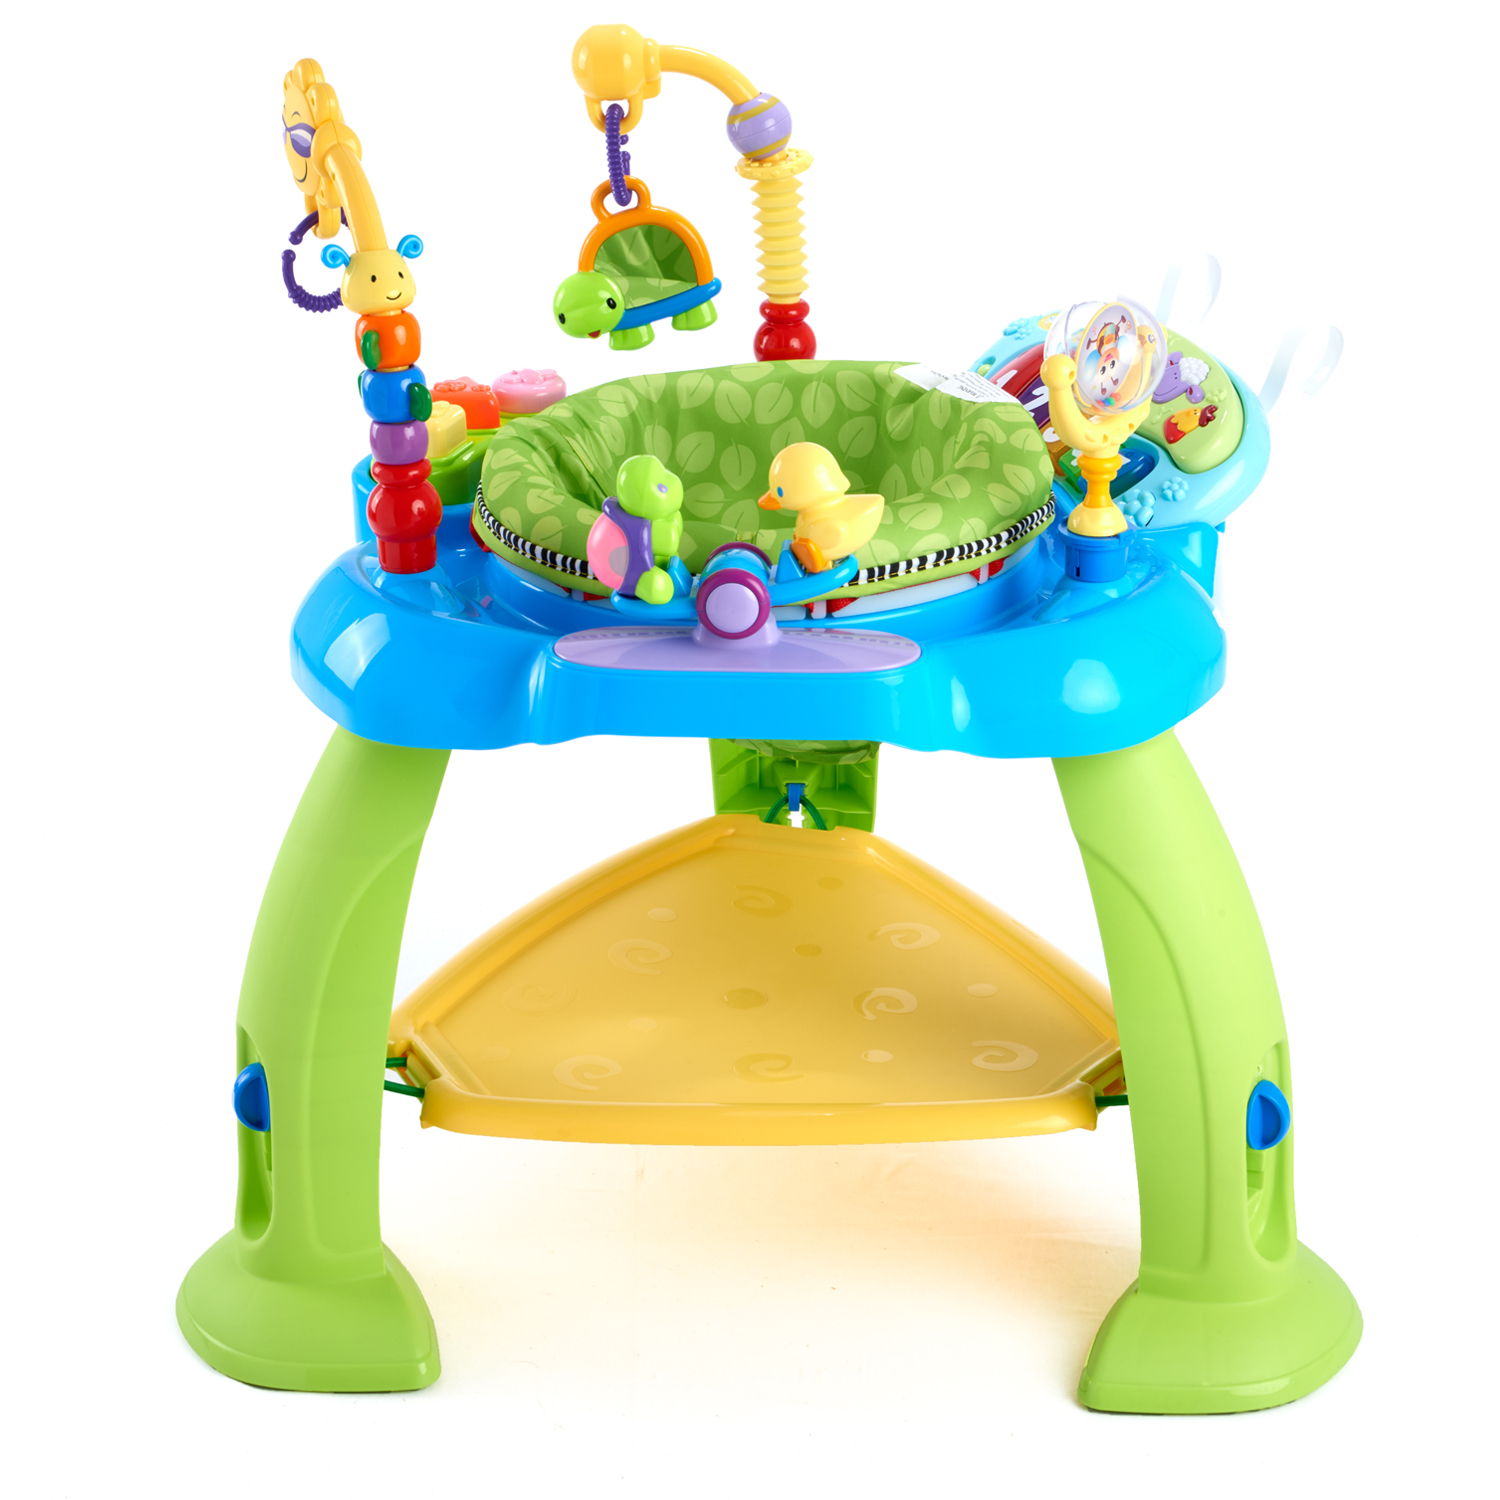 Bouncer Baby Baby Bouncer Jumper Learning Activity Pad For Kids Child